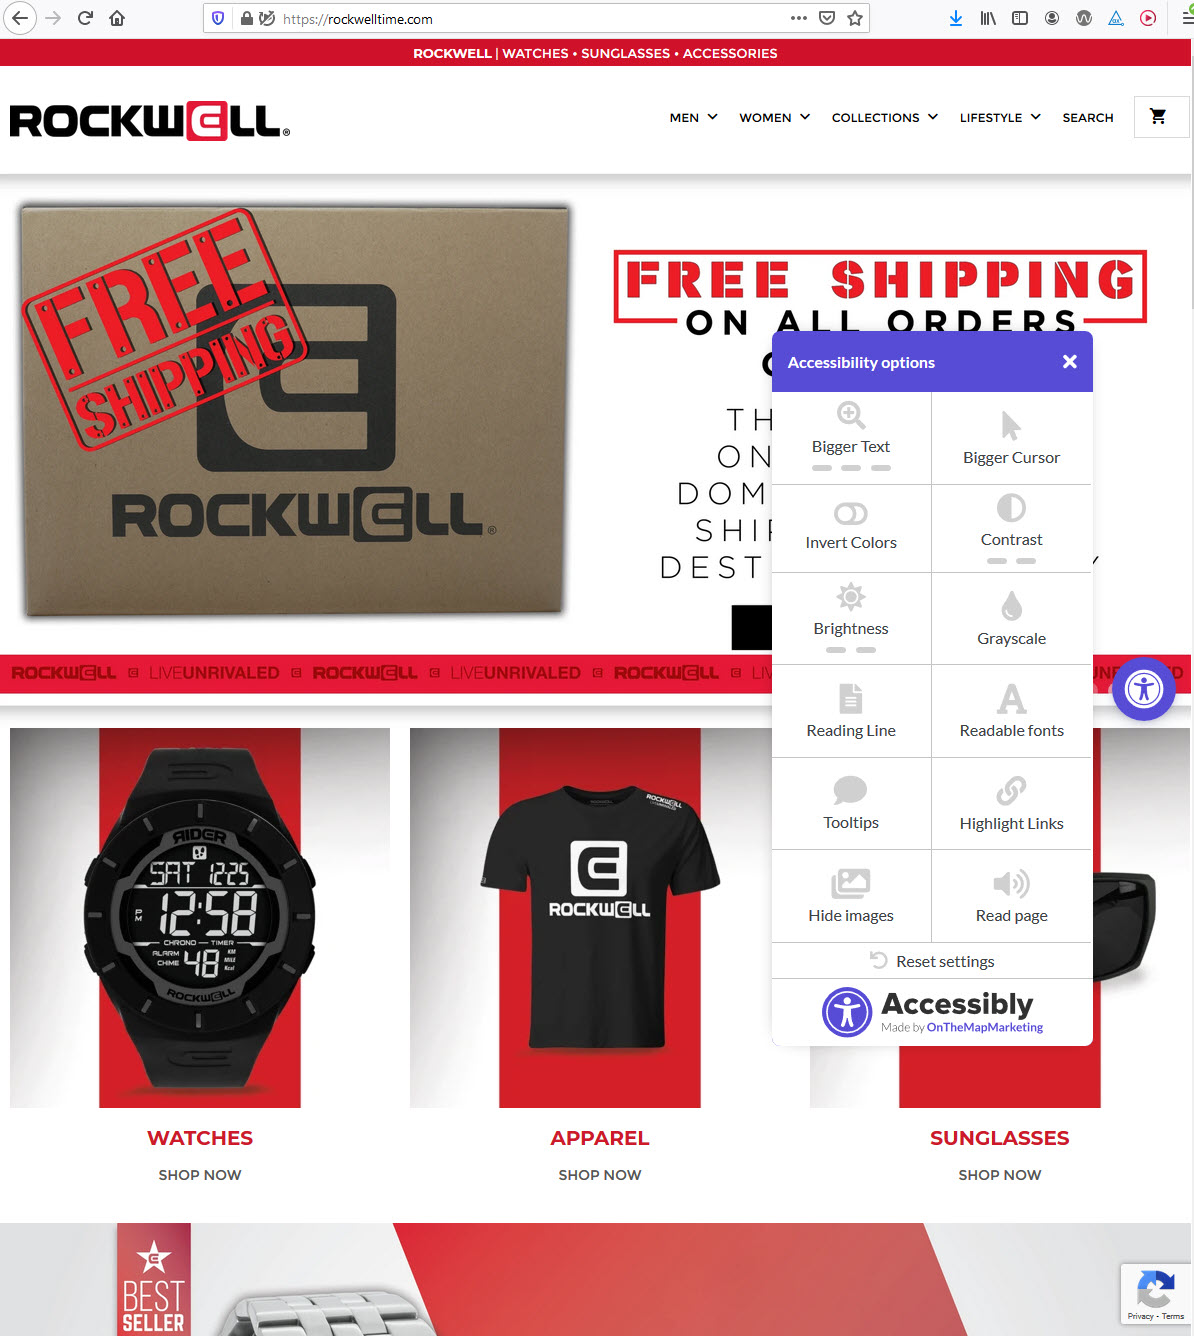 RockwellTime.com homepage with Accessibly toolbar menu widget open